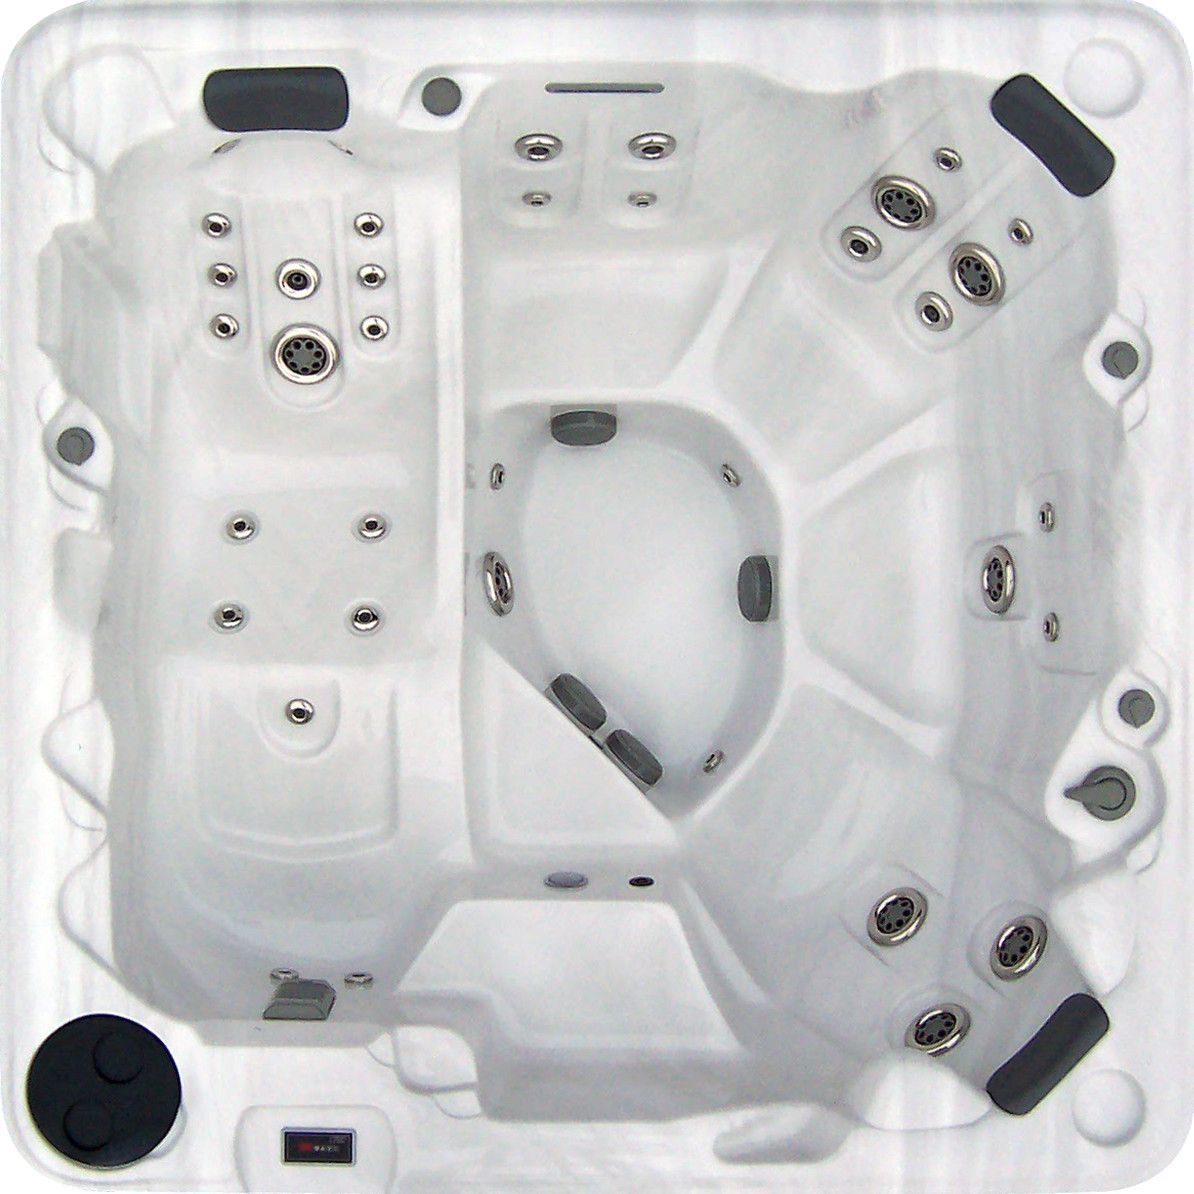 Bayview Spas Summerville Silvertone Acrylic/Stainless Steel 7 Foot 88 Jet  Hot Tub With Lounger